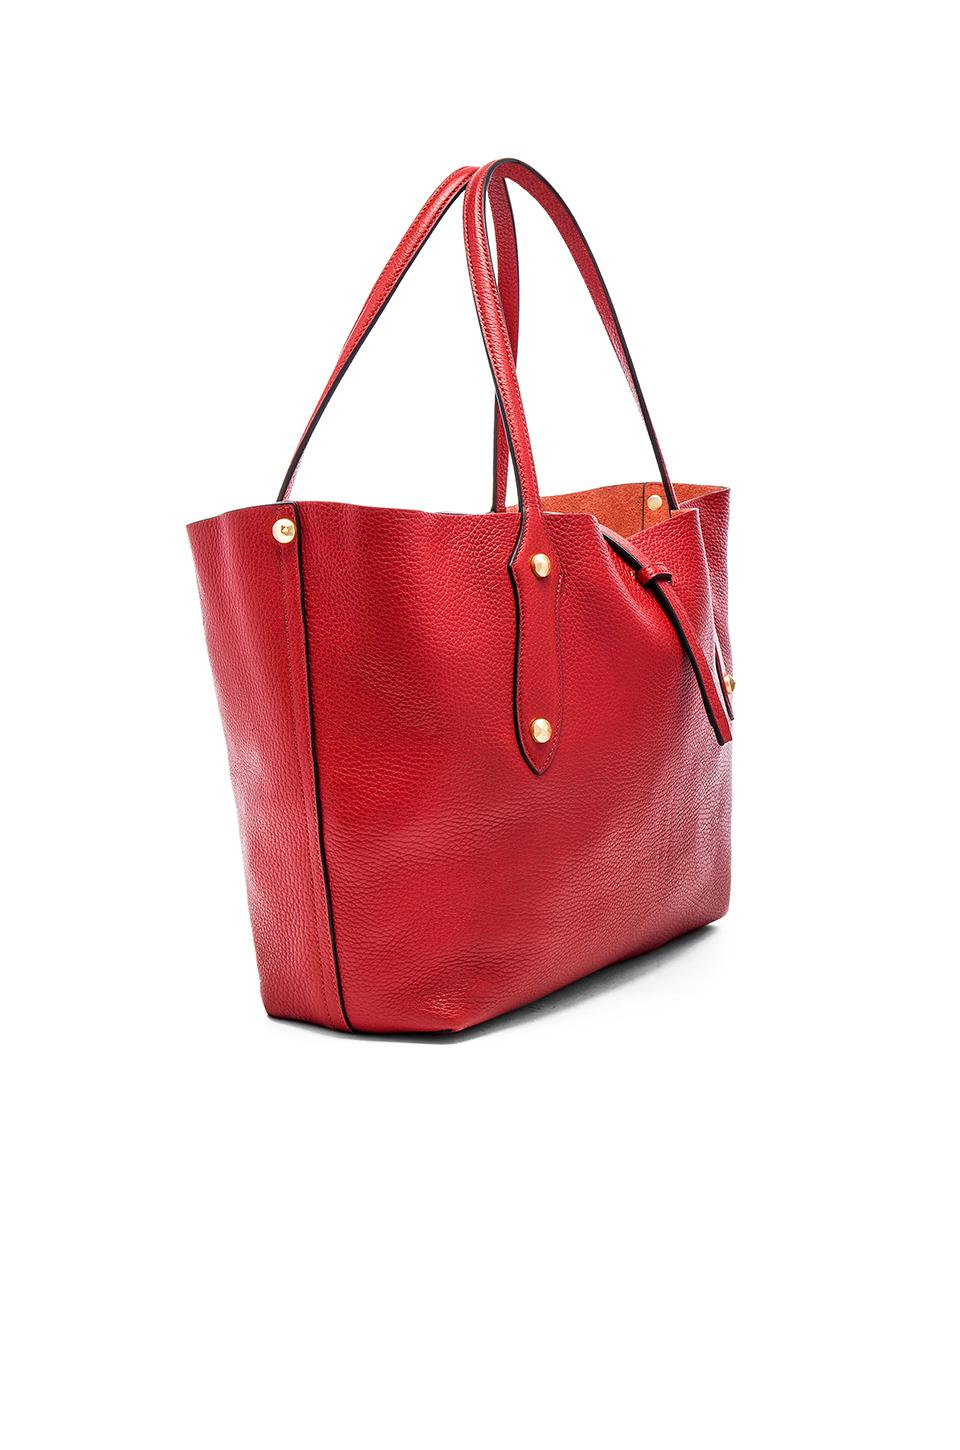 Annabel Ingall Leather Isabella Small Tote In Red.